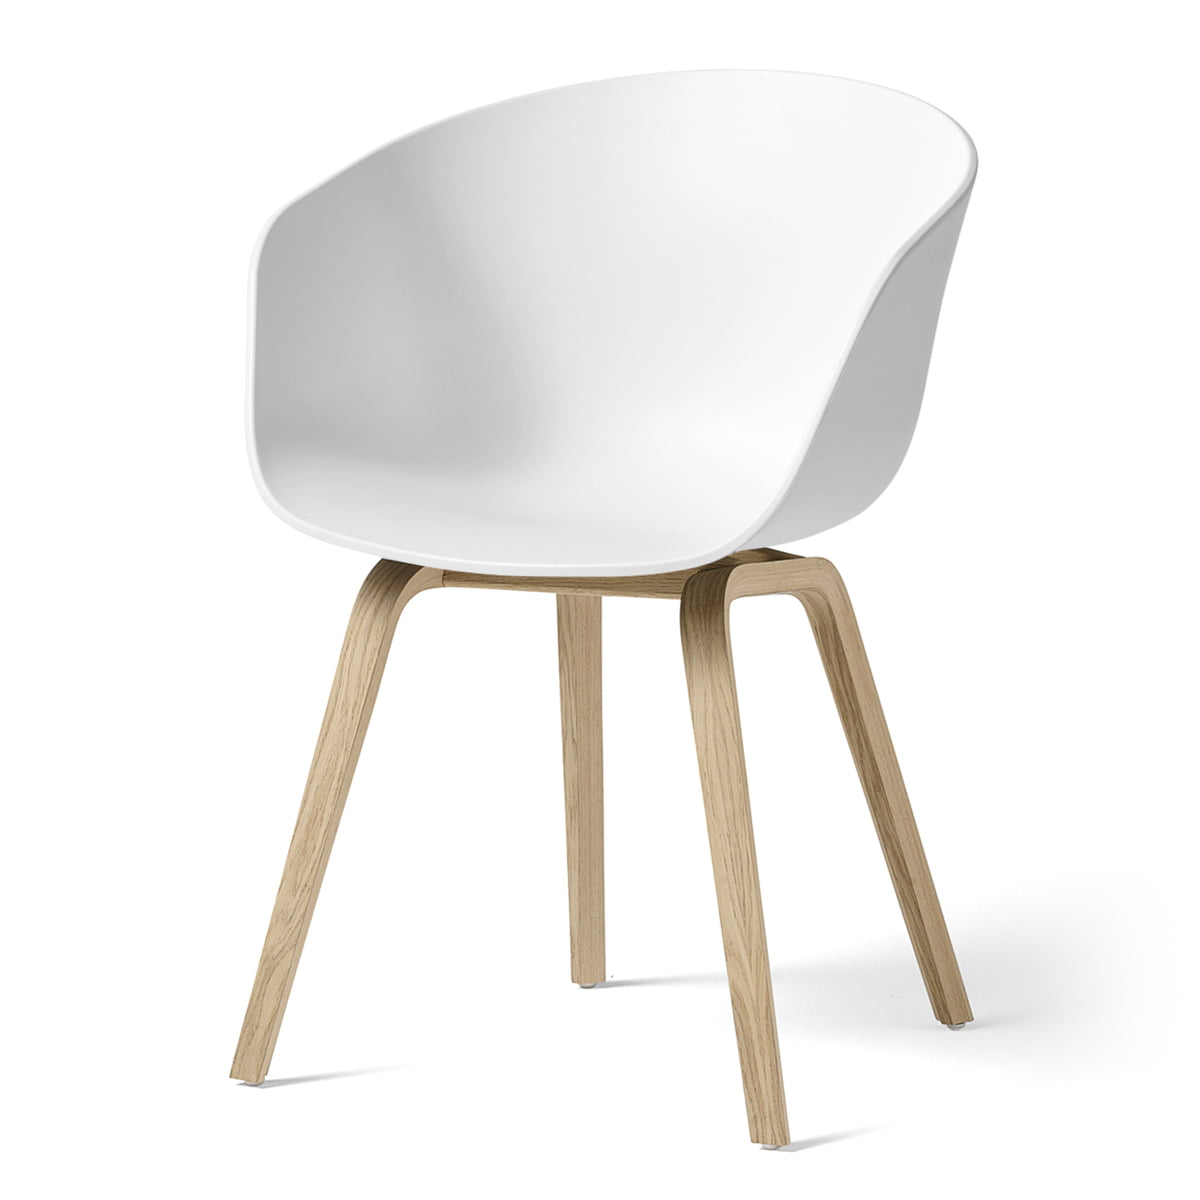 About A Chair Hay.Hay About A Chair Aac 22 Wooden Four Leg Frame Oak Matt Lacquered White